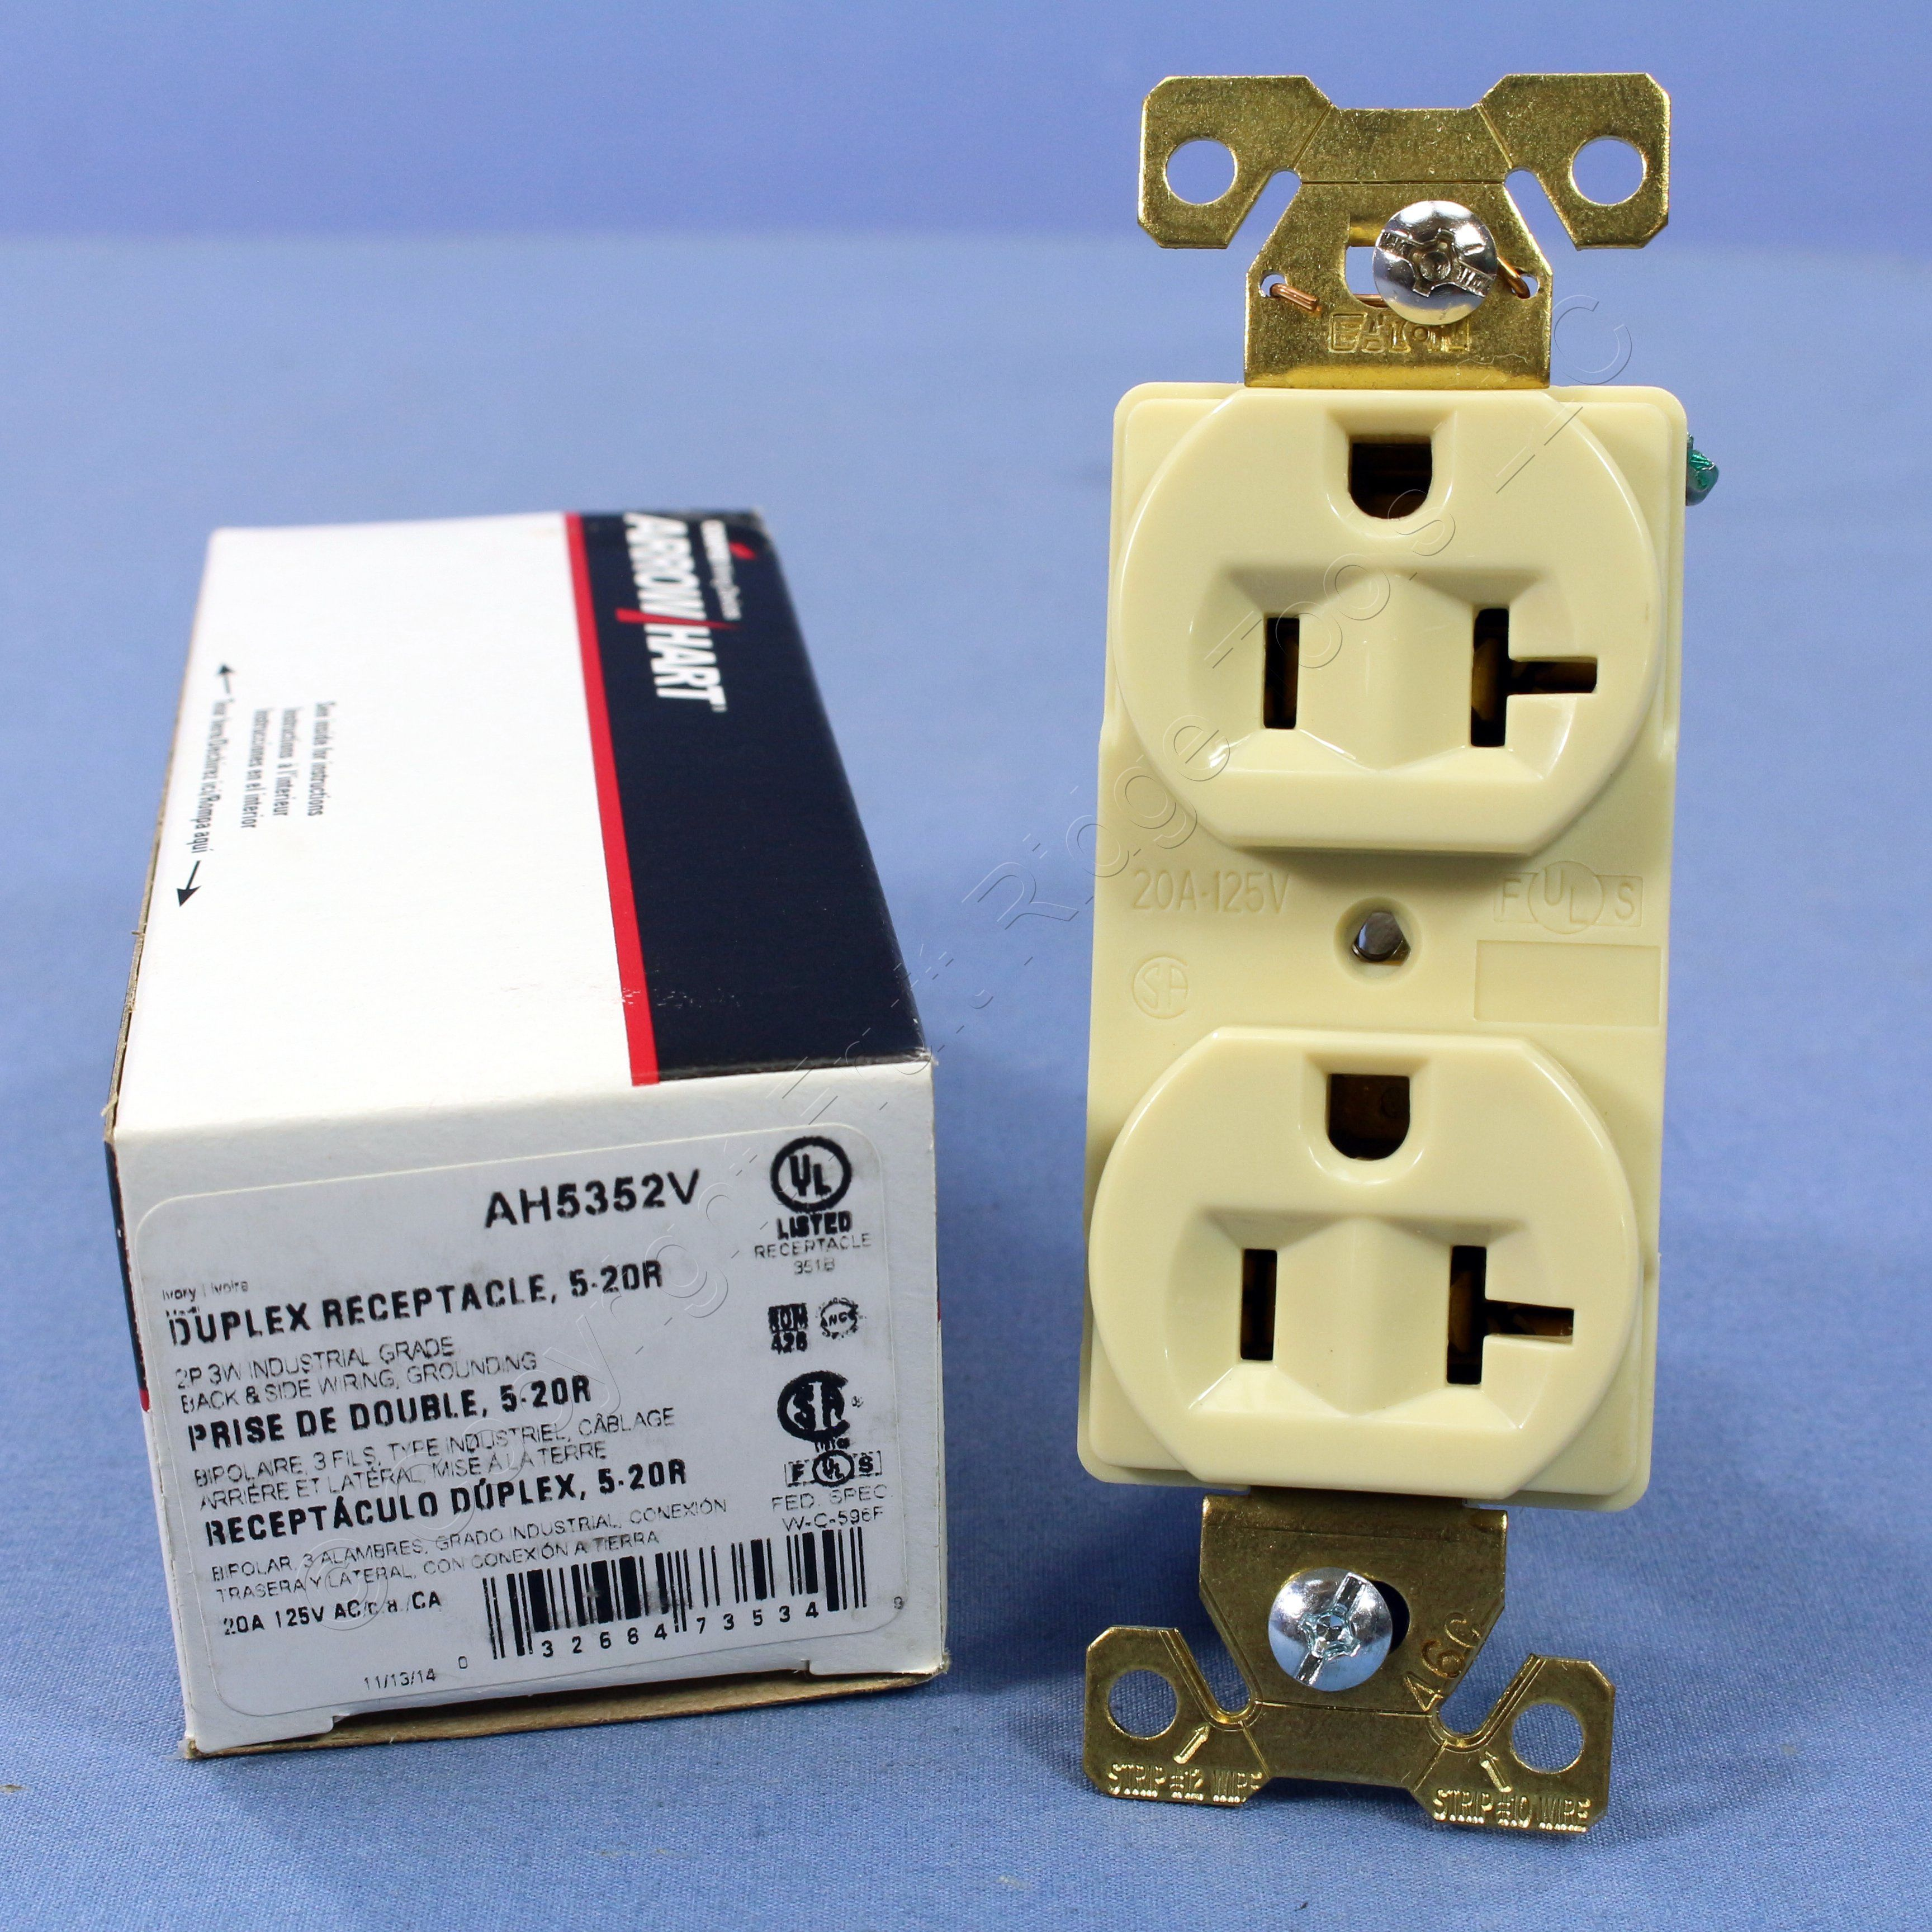 Arrow Outlets Giftsforsubs Hart 5709n Power Receptacle 50a 250v Nema 650 2pole 3wire Ebay Cooper Ivor